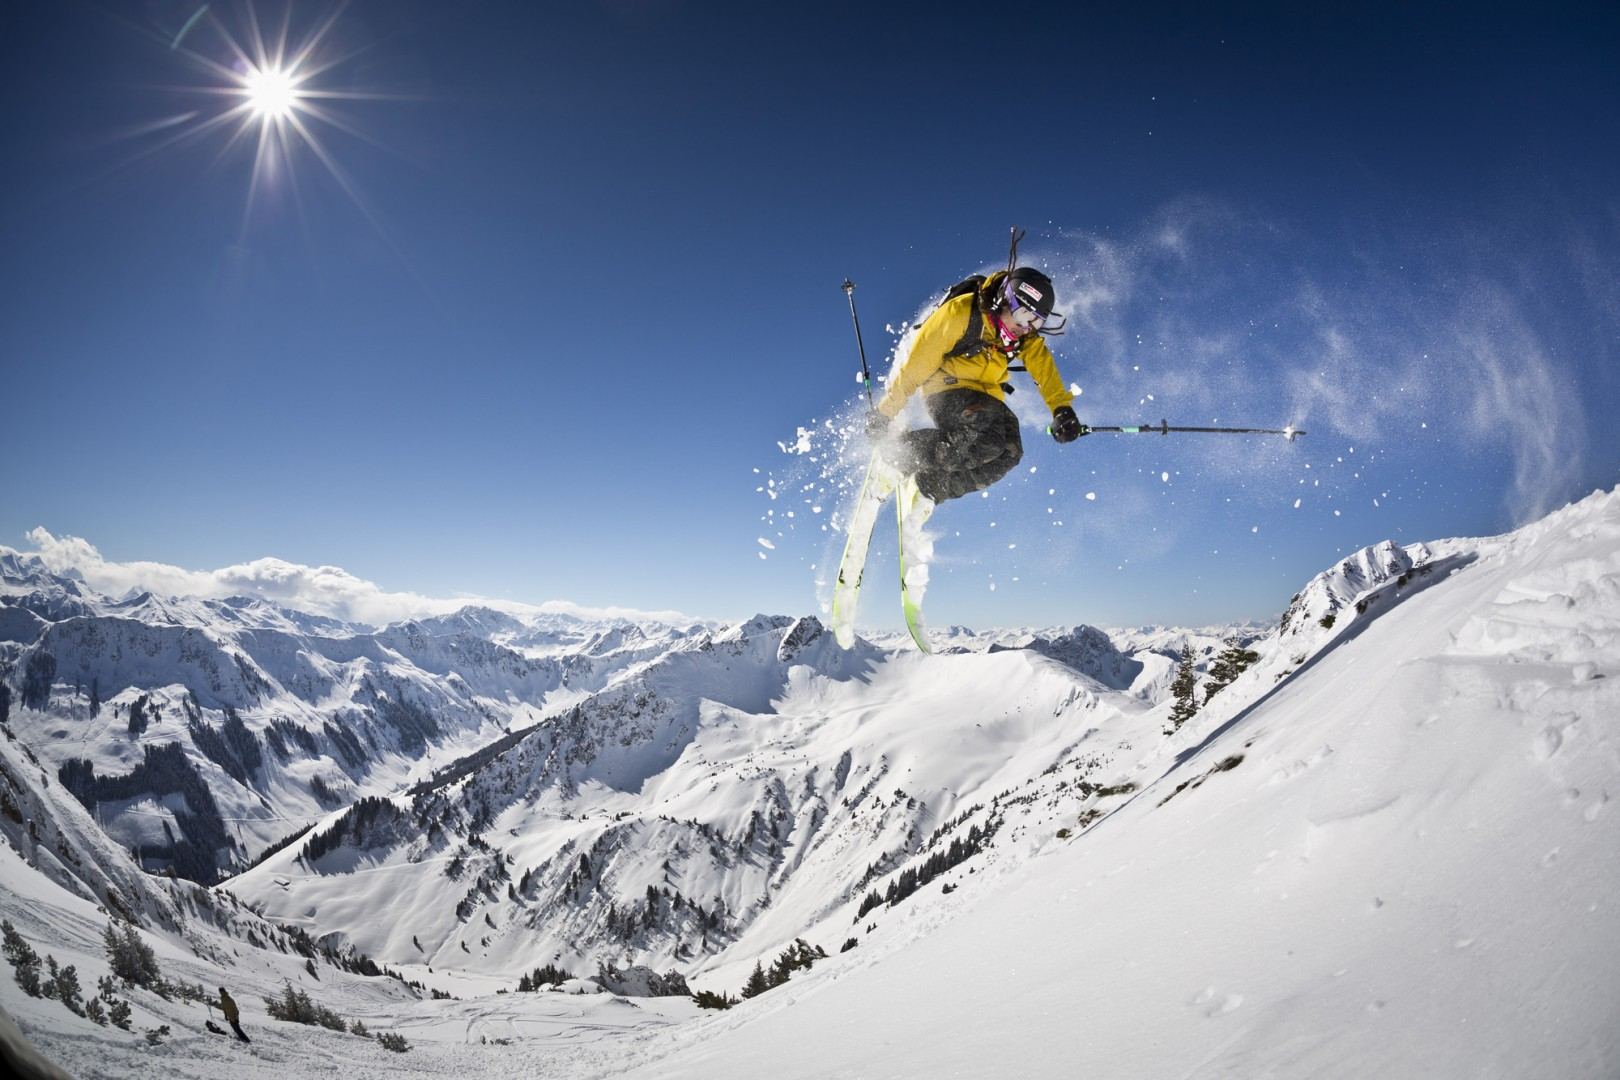 The best slopes for the perfect ski experience